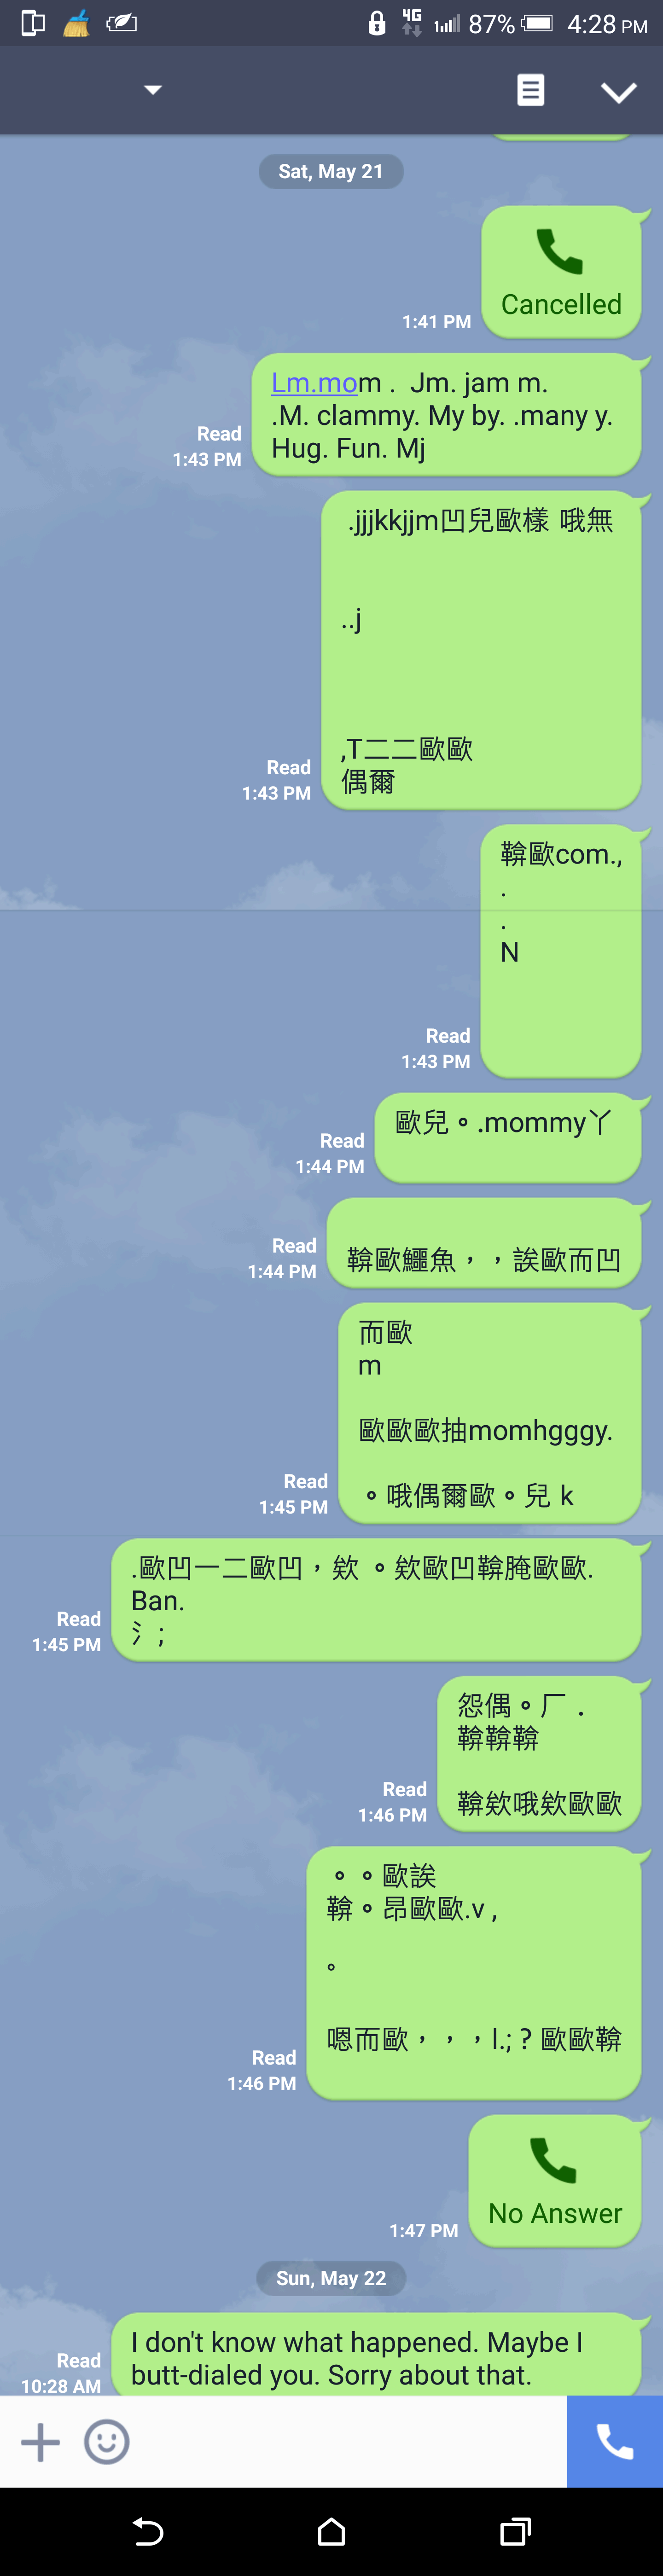 composite screenshot of a series of text messages sent in garbage English and garbage Mandarin Chinese (in Chinese characters)